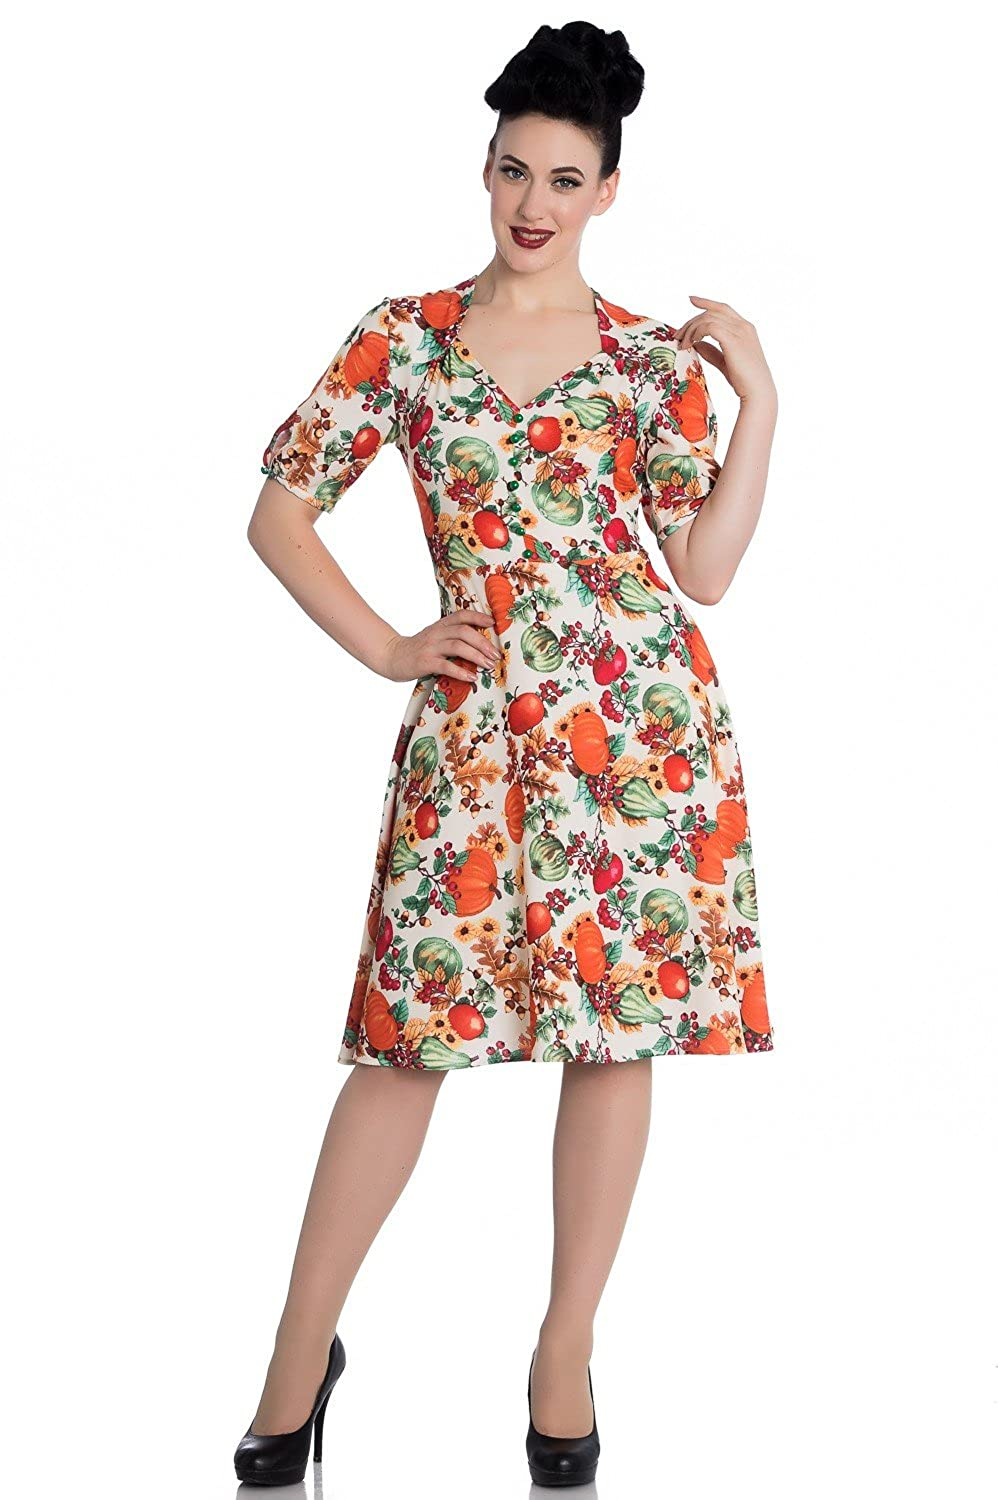 Vintage Christmas Gift Ideas for Women Hell Bunny 50s Retro Harvest Autumn Pumpkin Berries Cocktail Party Flare Dress $29.99 AT vintagedancer.com